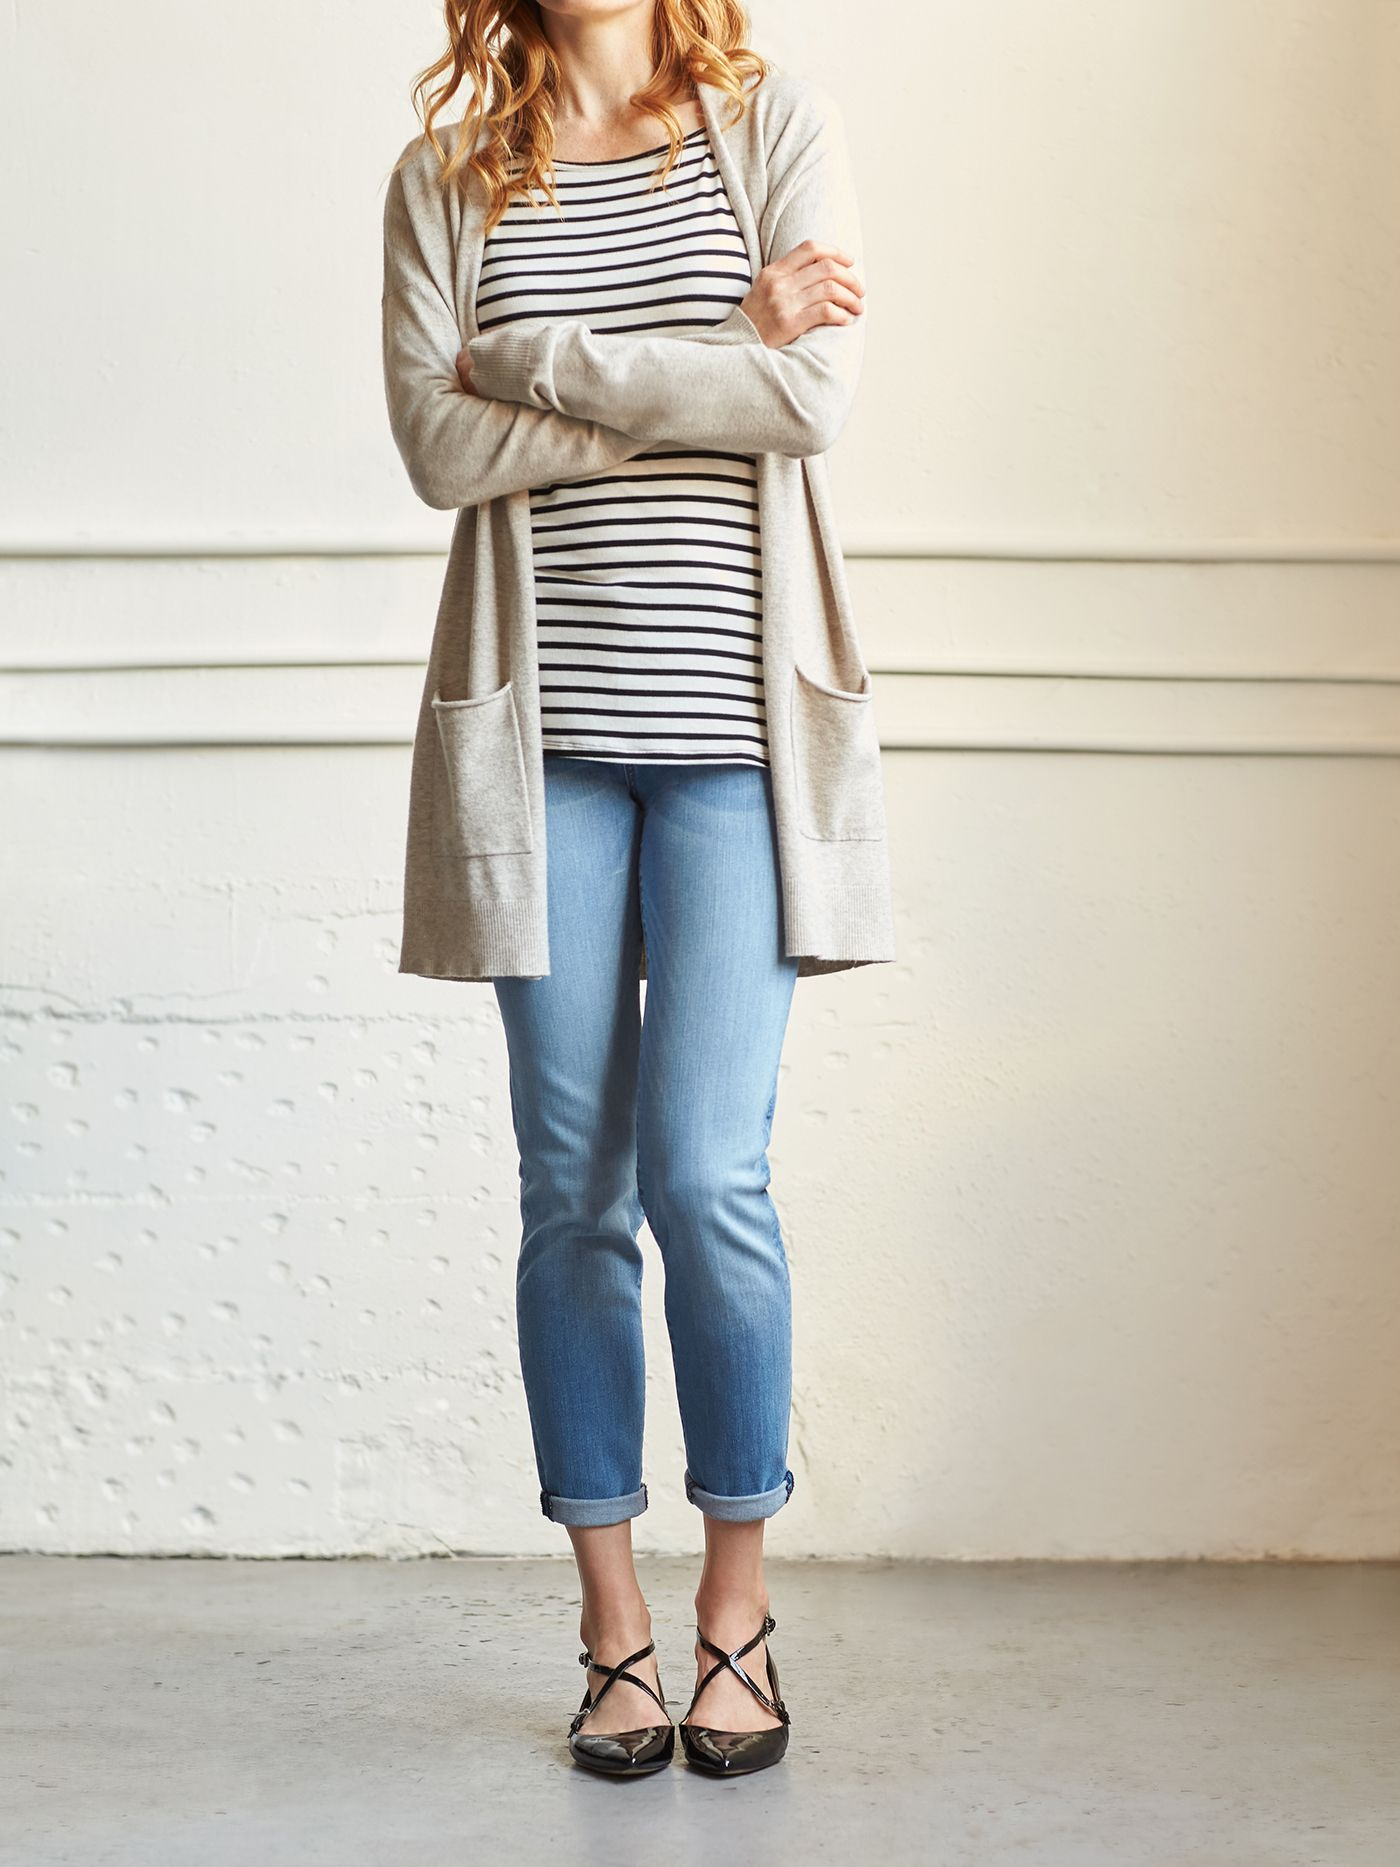 If you're looking to style a pair super-relaxed jeans try out the double cuff…